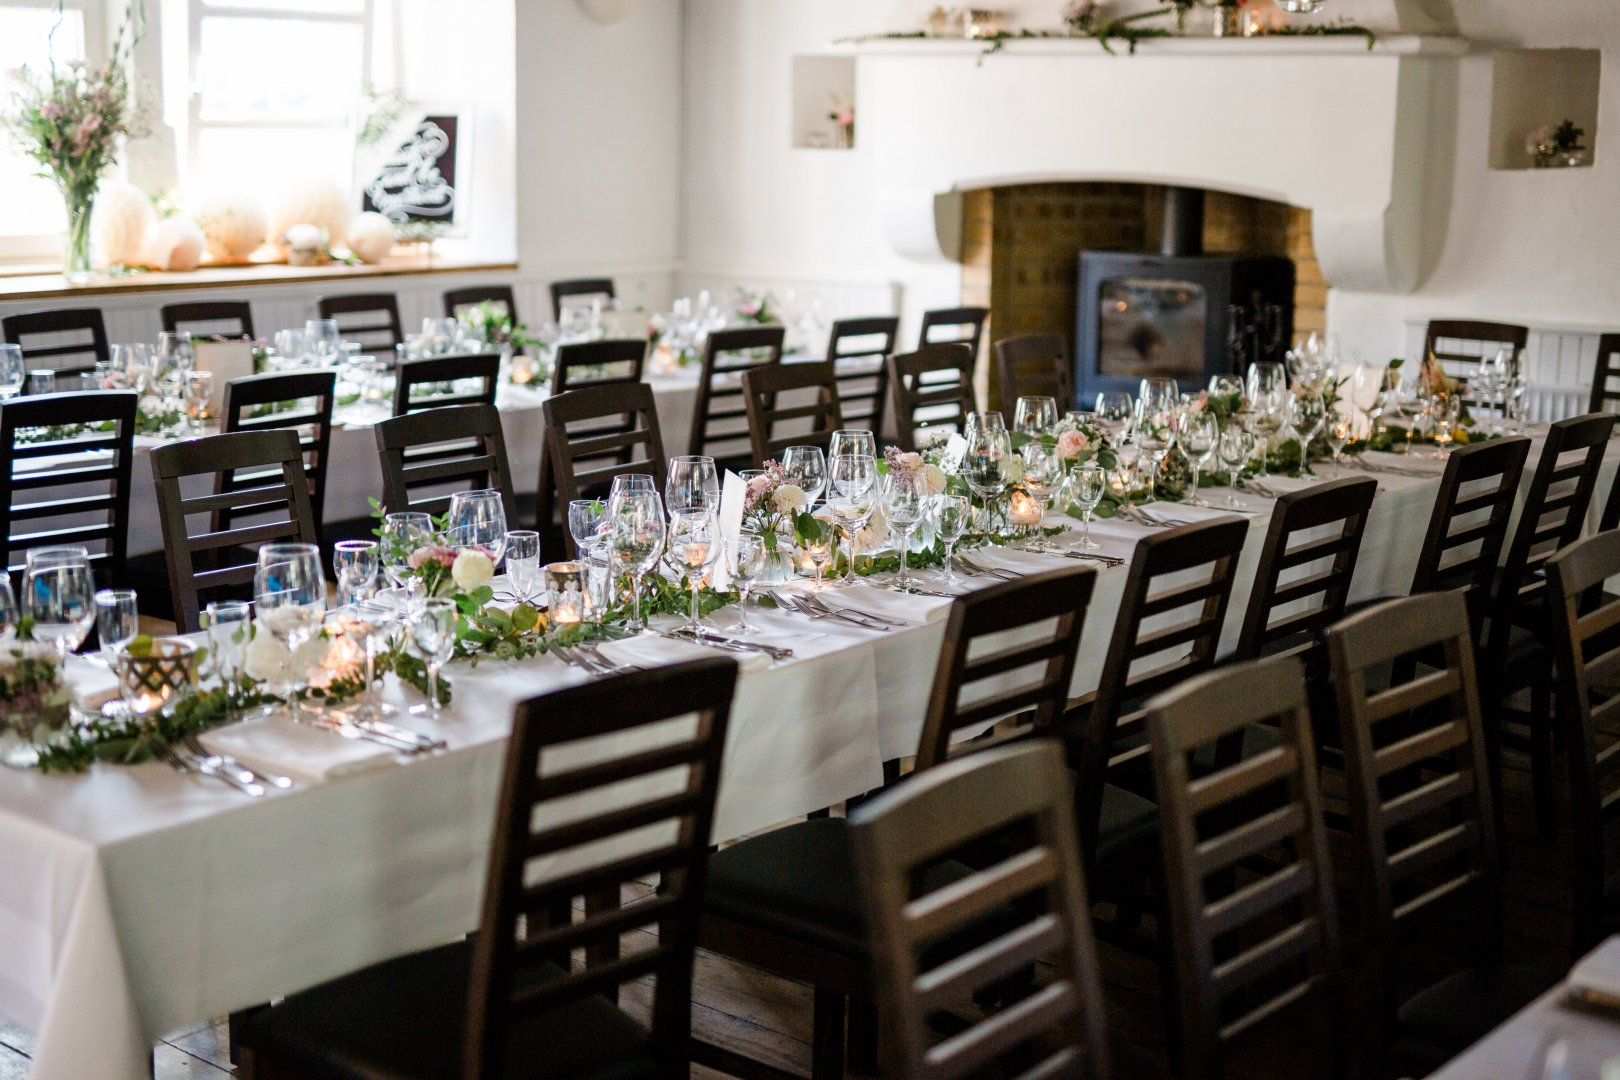 Chiavari chair Rehearsal dinner Table Room Chair Wedding reception Furniture Party Event Banquet Restaurant Function hall Ceremony Interior design Linens Textile Tablecloth Meal Flower Plant Dining room Building Wedding banquet Centrepiece Wedding